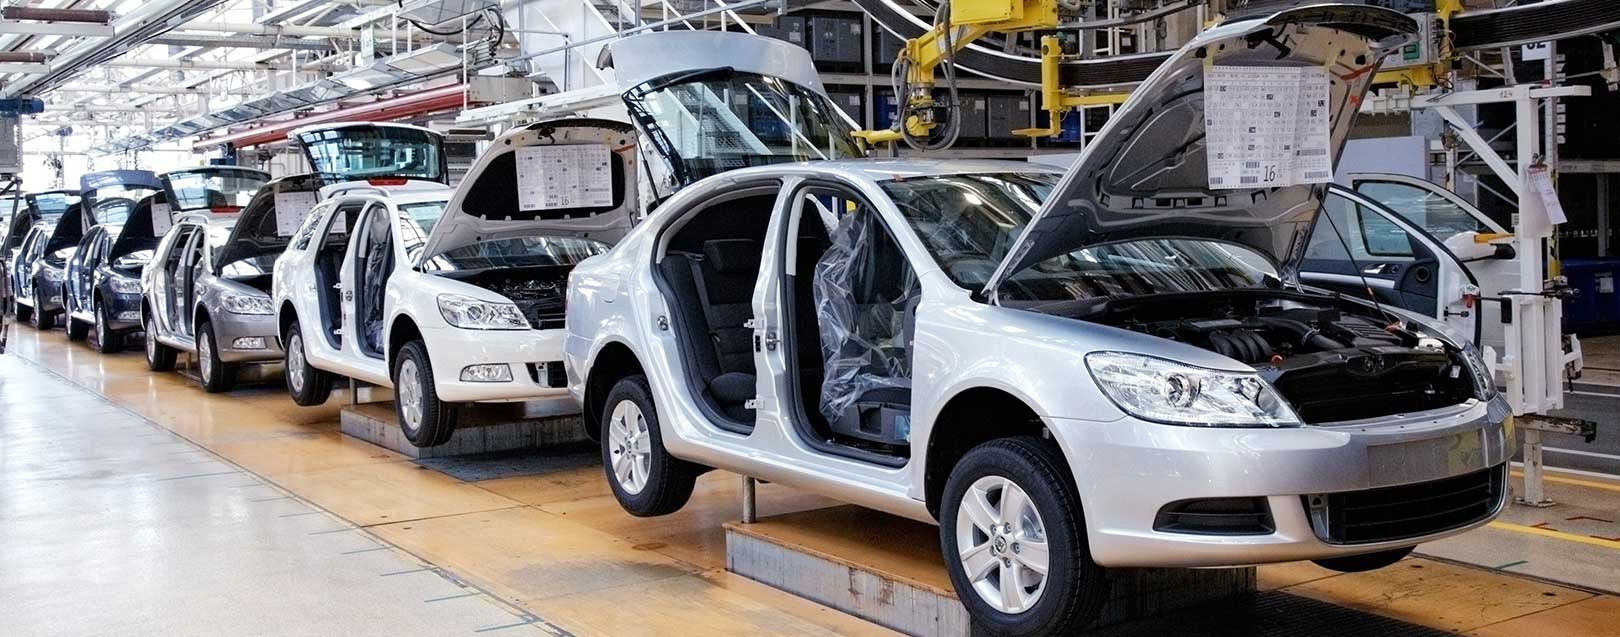 Auto sector to contribute 12% to India's GDP in next decade: Geete